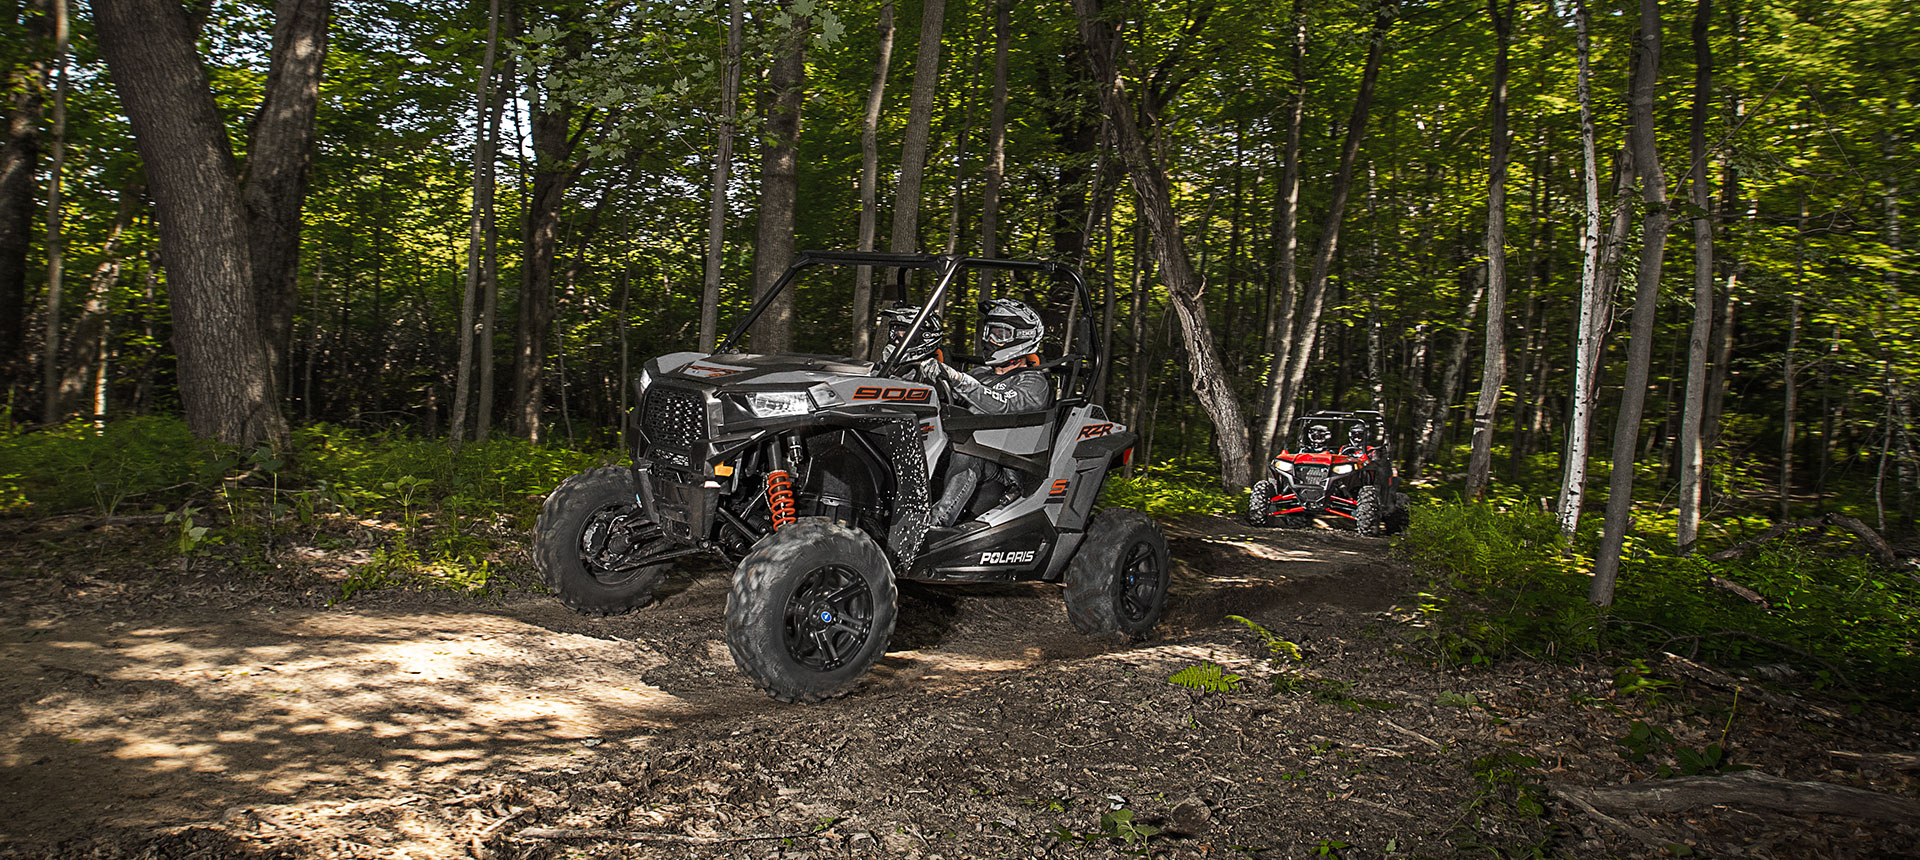 2019 Polaris RZR S 900 EPS in New York, New York